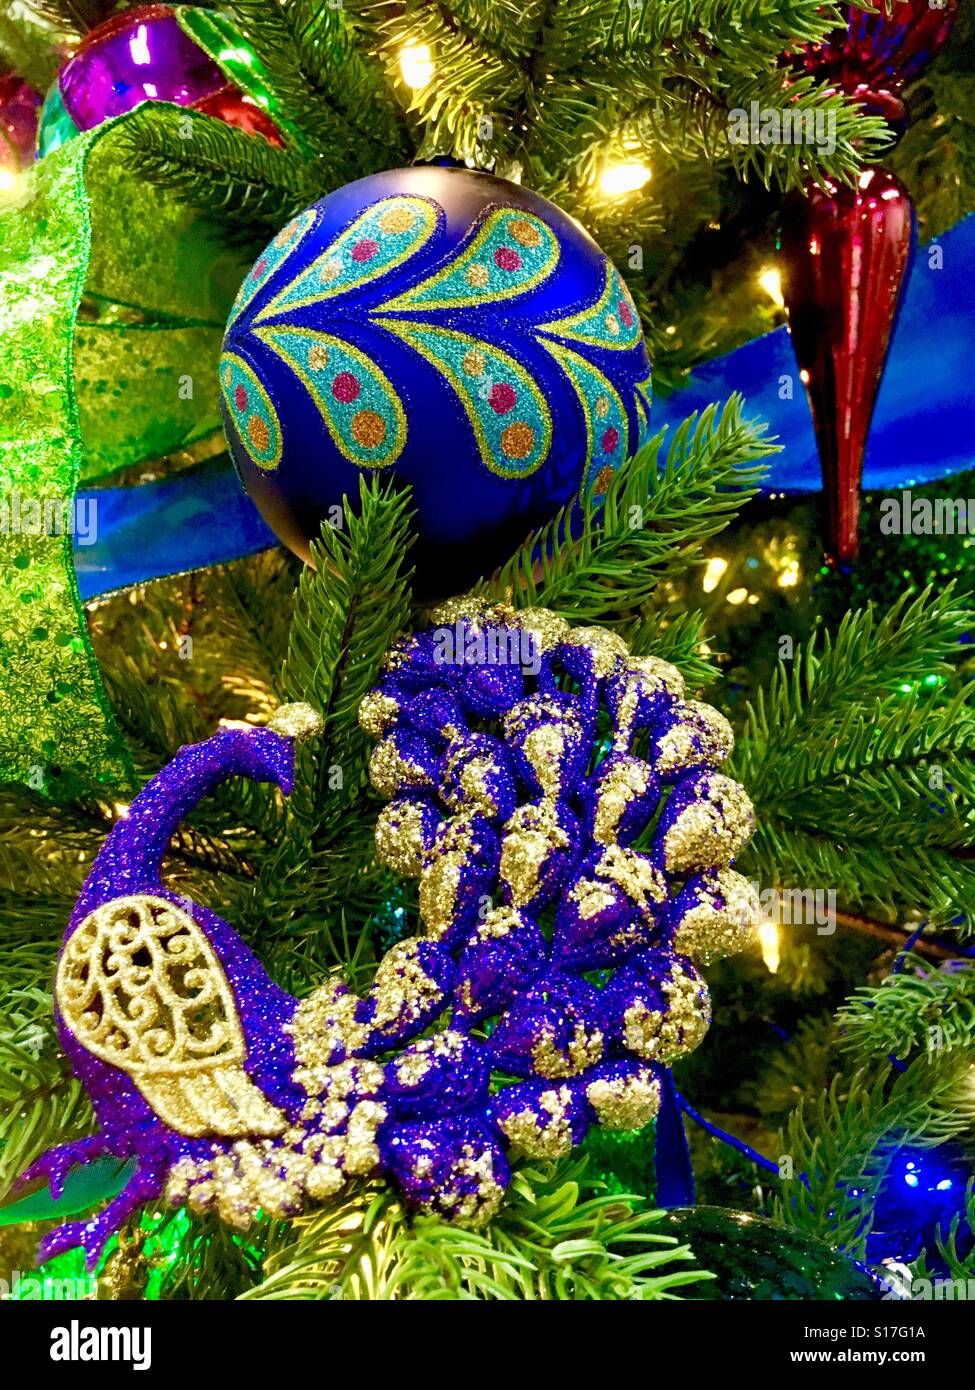 Peacock Christmas Decorations Stock Photo Alamy